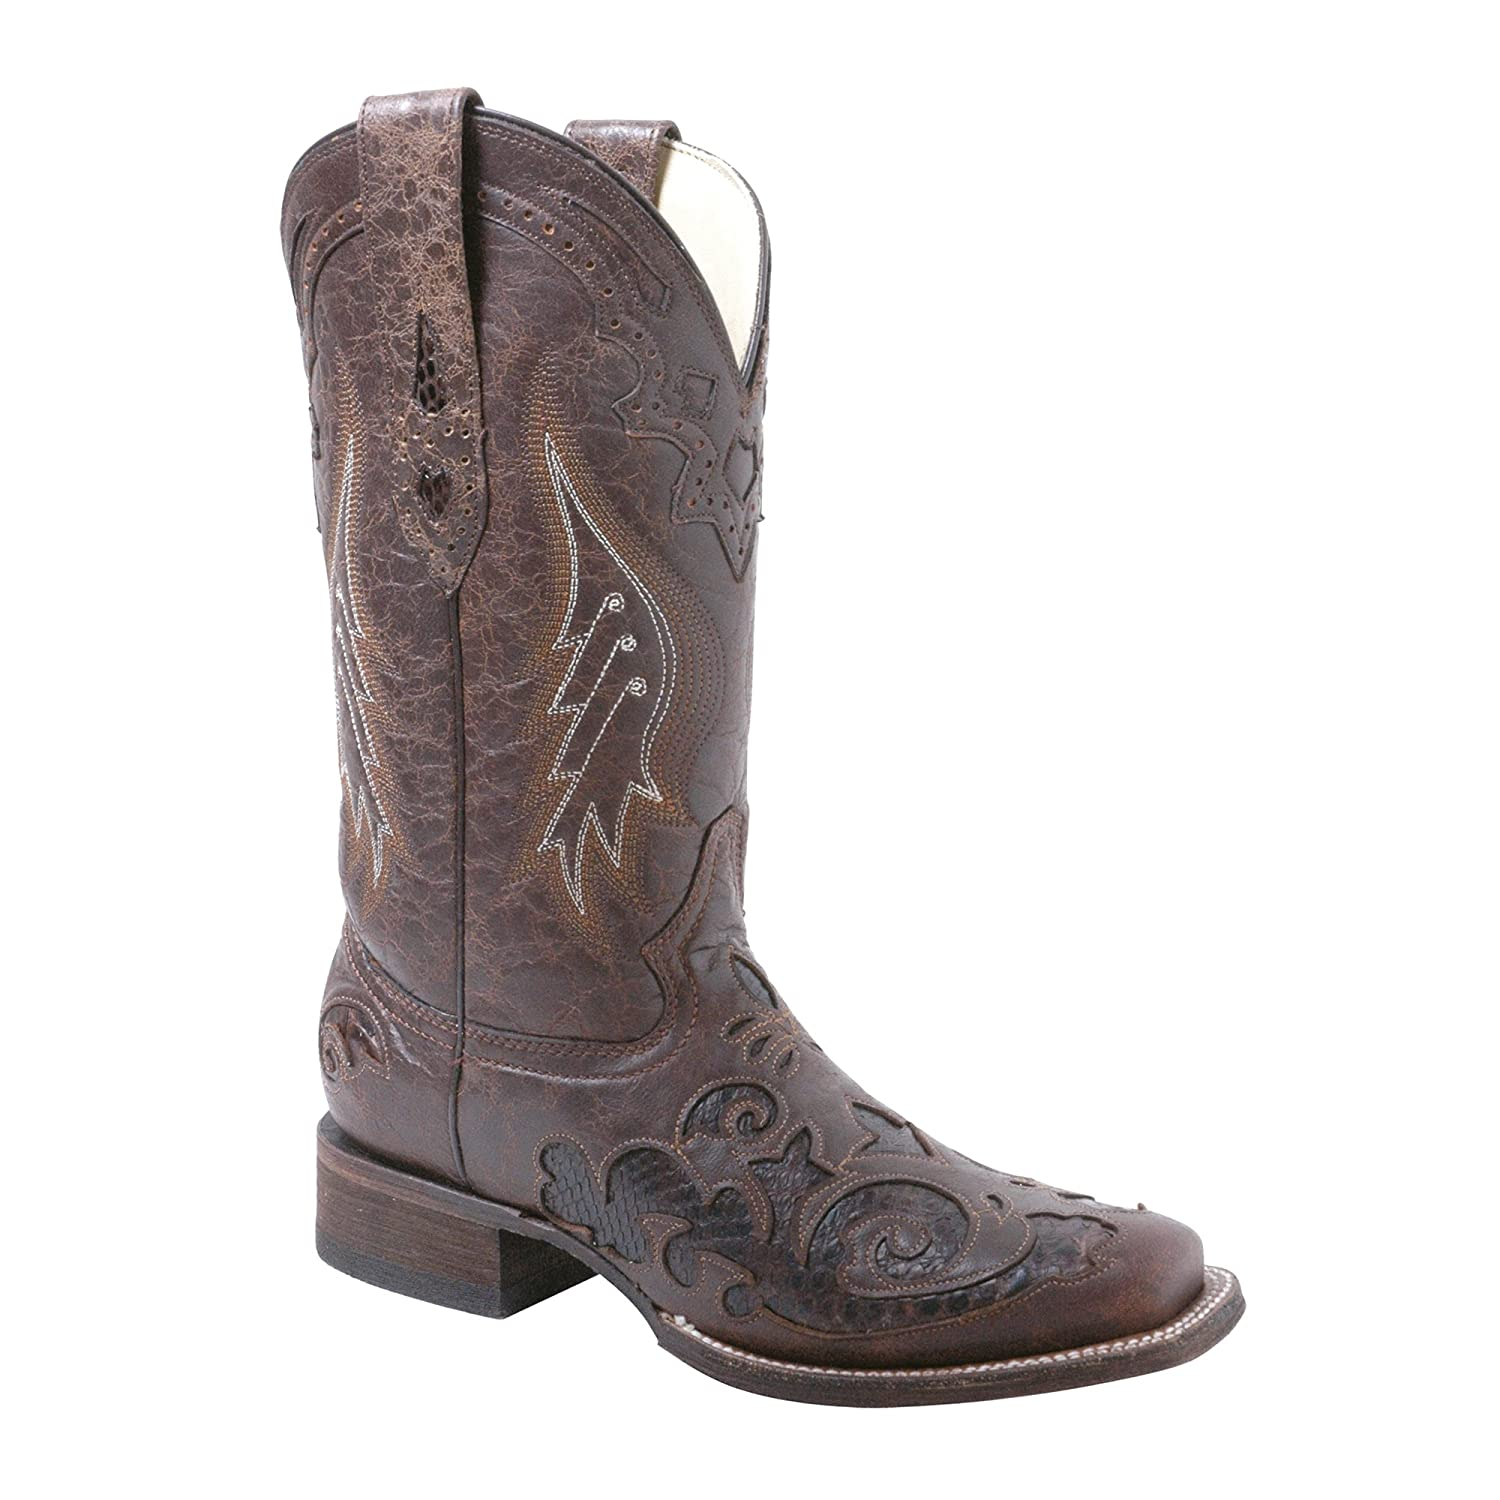 Corral Women's A2404 Snake Cowboy Inlay Brown Fashion Western Cowboy Snake Boots B00534NF3M 9.5 B(M) US|Brown 003677